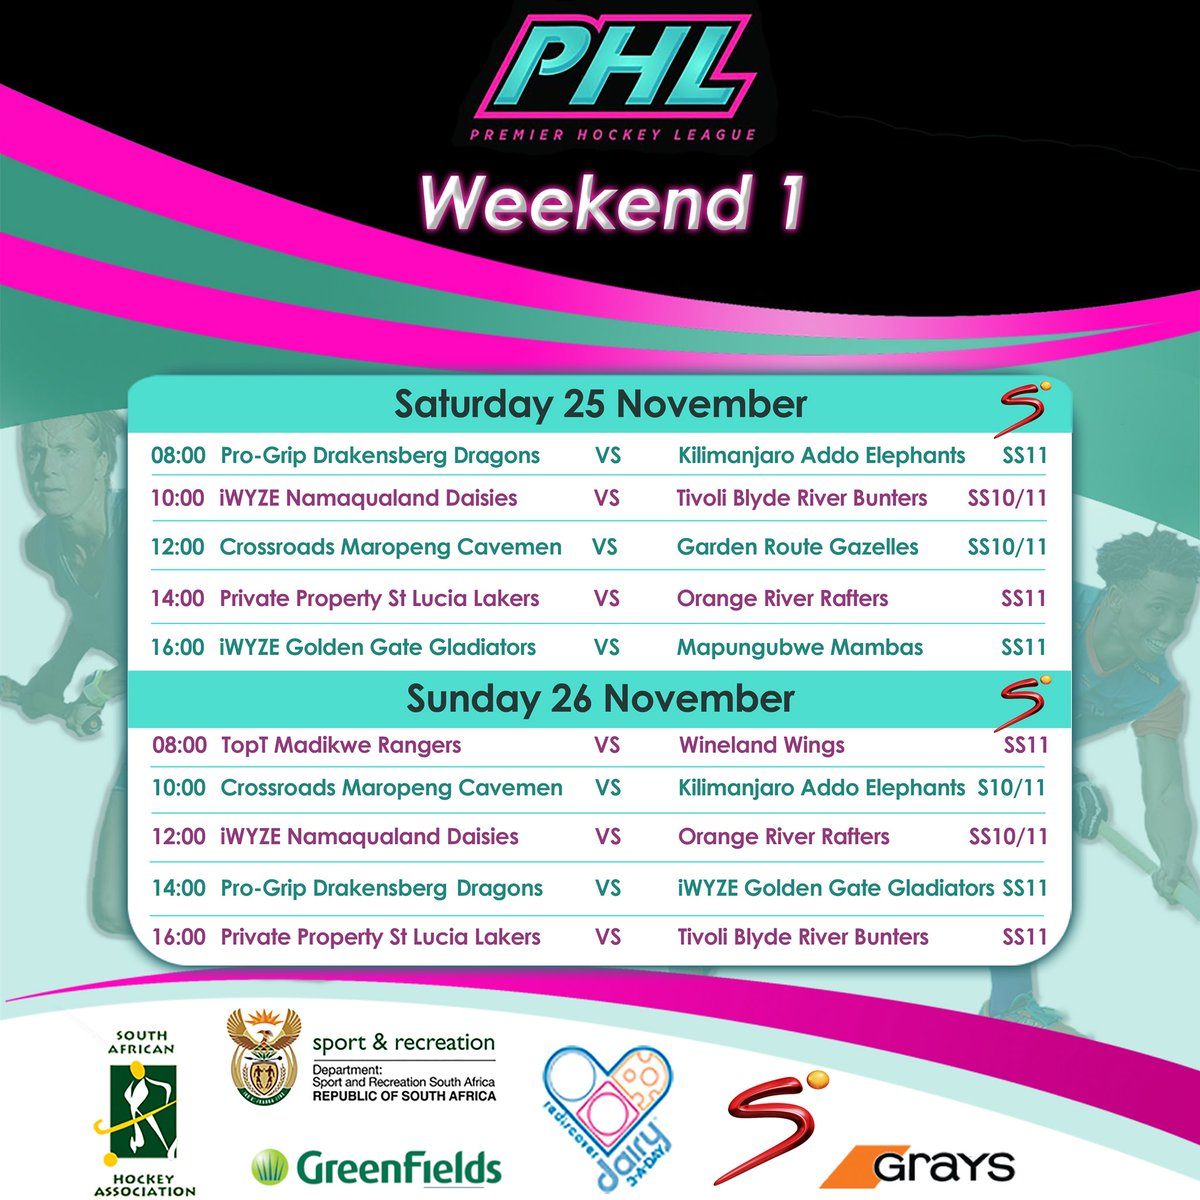 Are you ready for #PHL17?! The action kicks off tomorrow at 8am. If you can't get down to Randburg, make sure you tune in to SuperSport for all of tomorrows games 💪🏼 https://t.co/Xi28x8DS8z